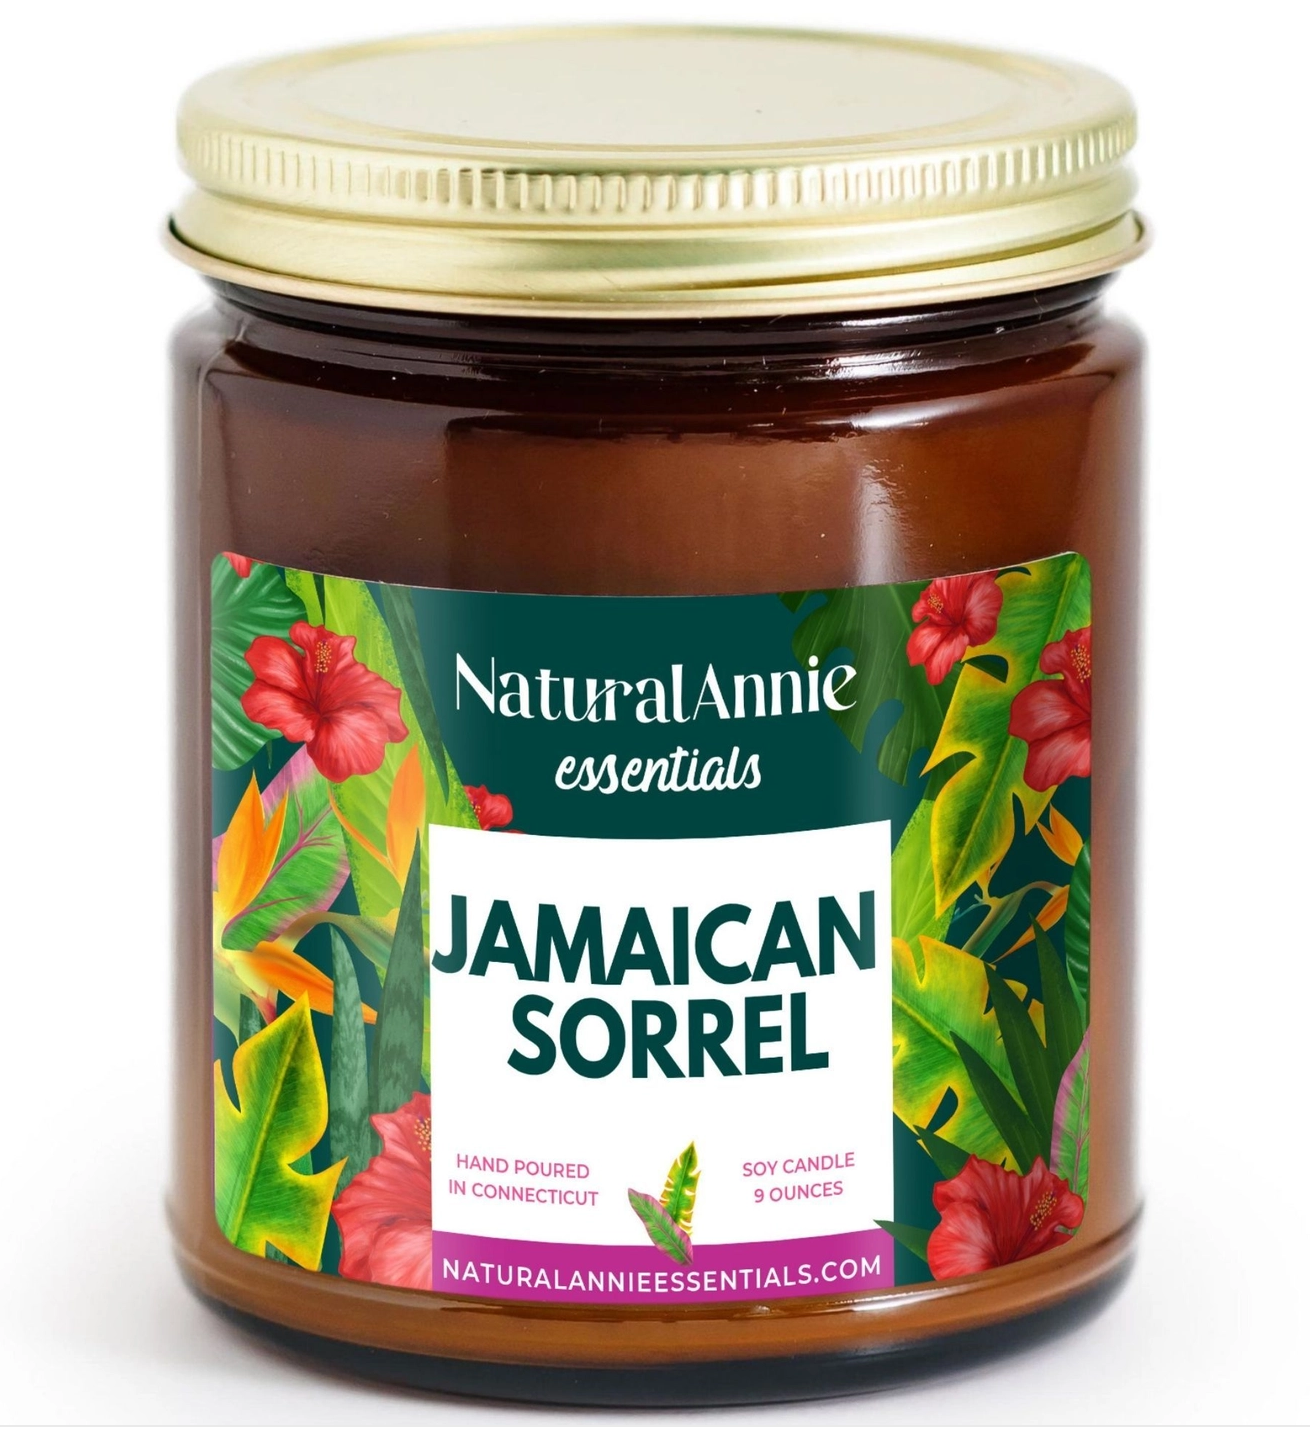 NaturalAnnie Essentials Jamaican Sorrel Scented Soy Candle 9 oz